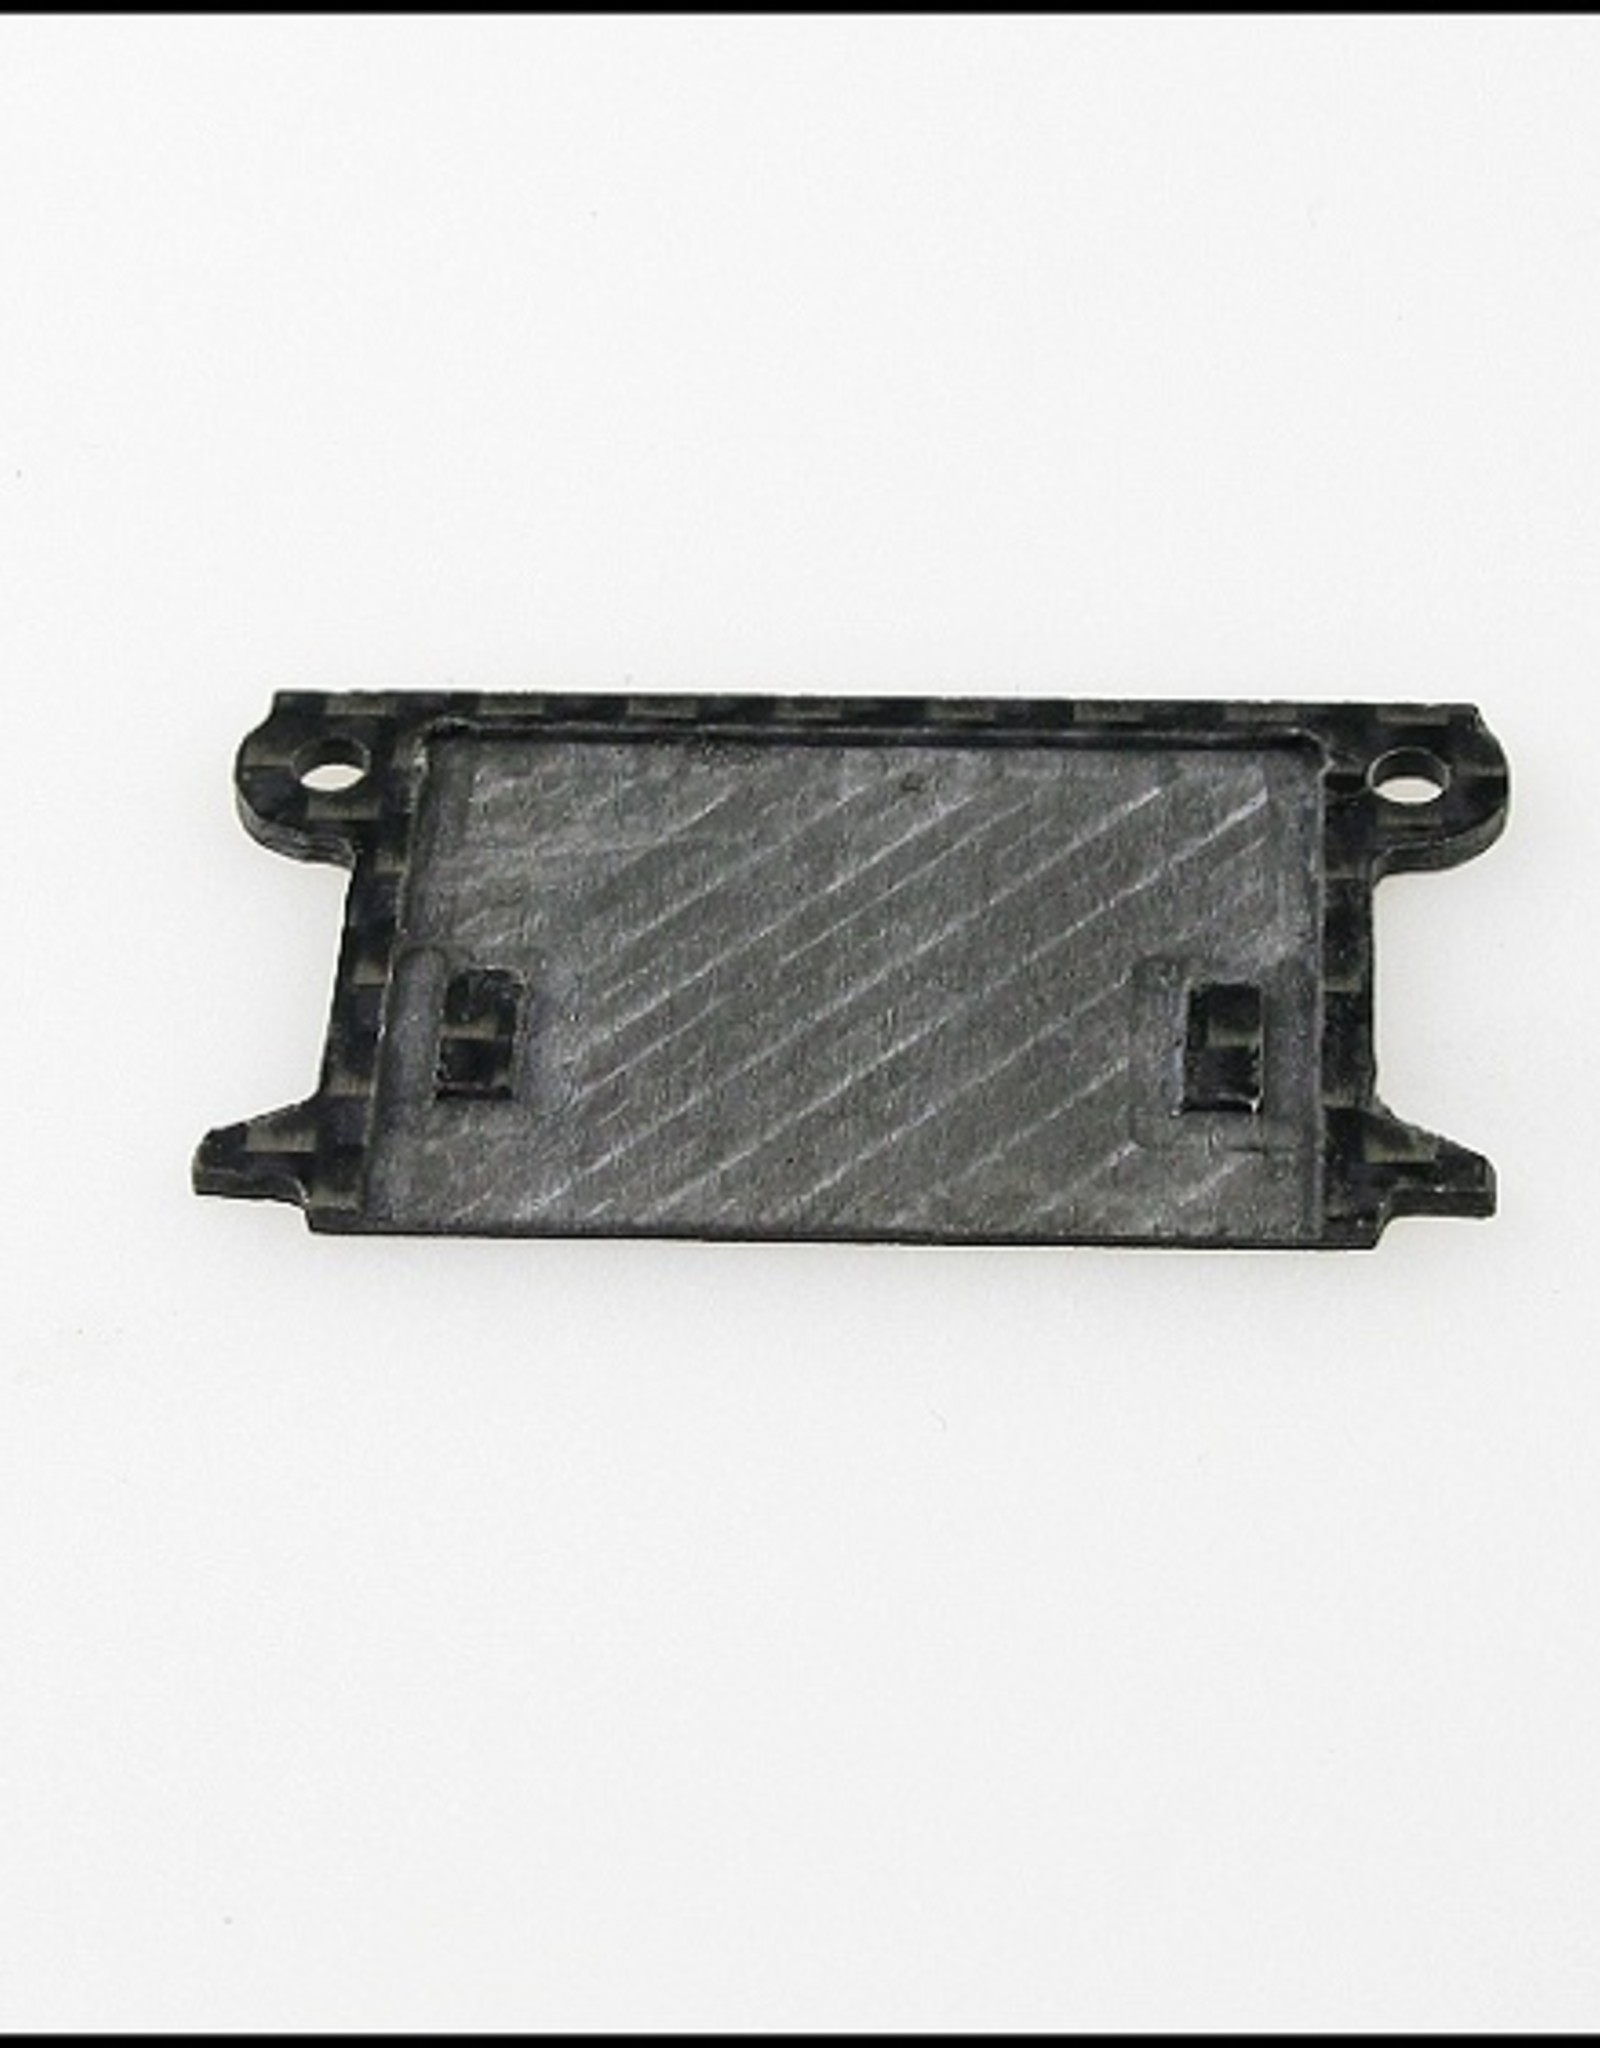 Pn Racing PN Racing Mini-Z MR03 Front Lower Carbon Cover